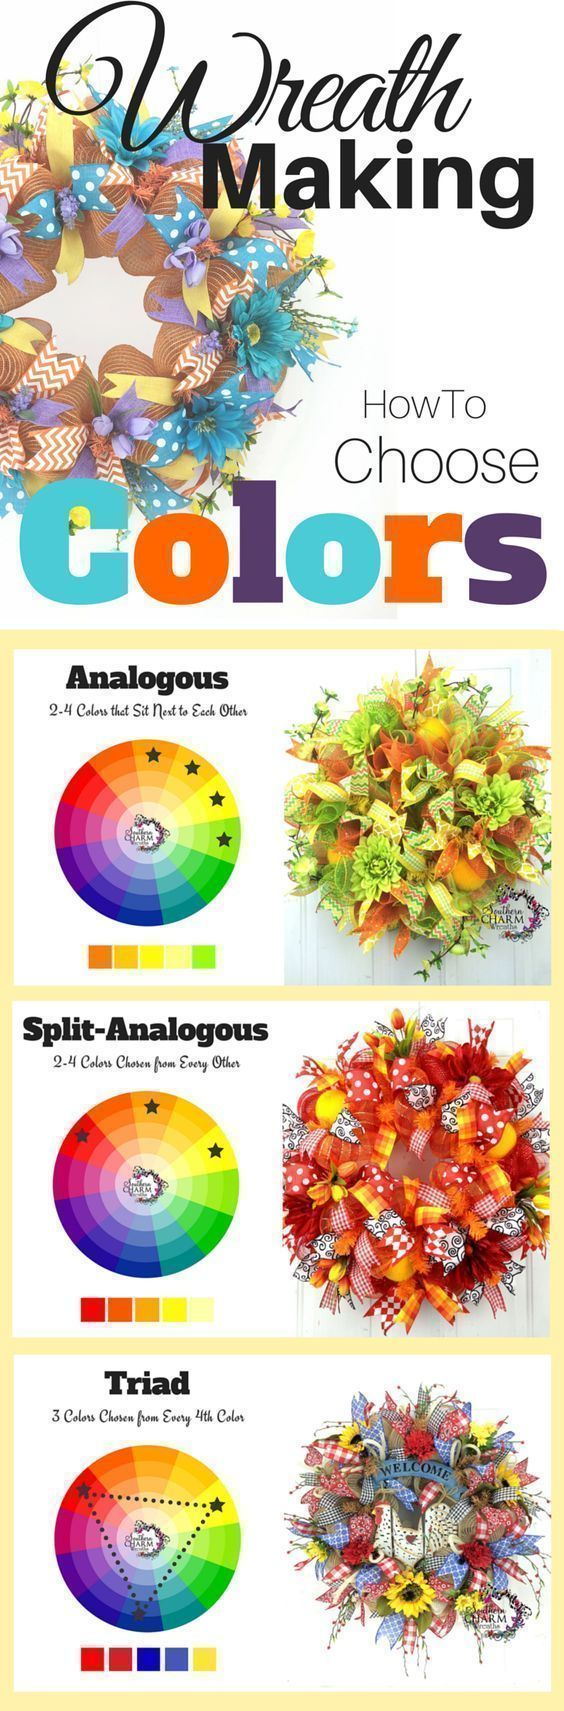 Wreath Making - How to choose Colors for Wreaths! I get asked all the time how to pick the colors, so let me show you where I get my inspiration and how to pick using a color wheel. How to choose colors for crafts. Choosing craft colors. #diy #wreath #diy